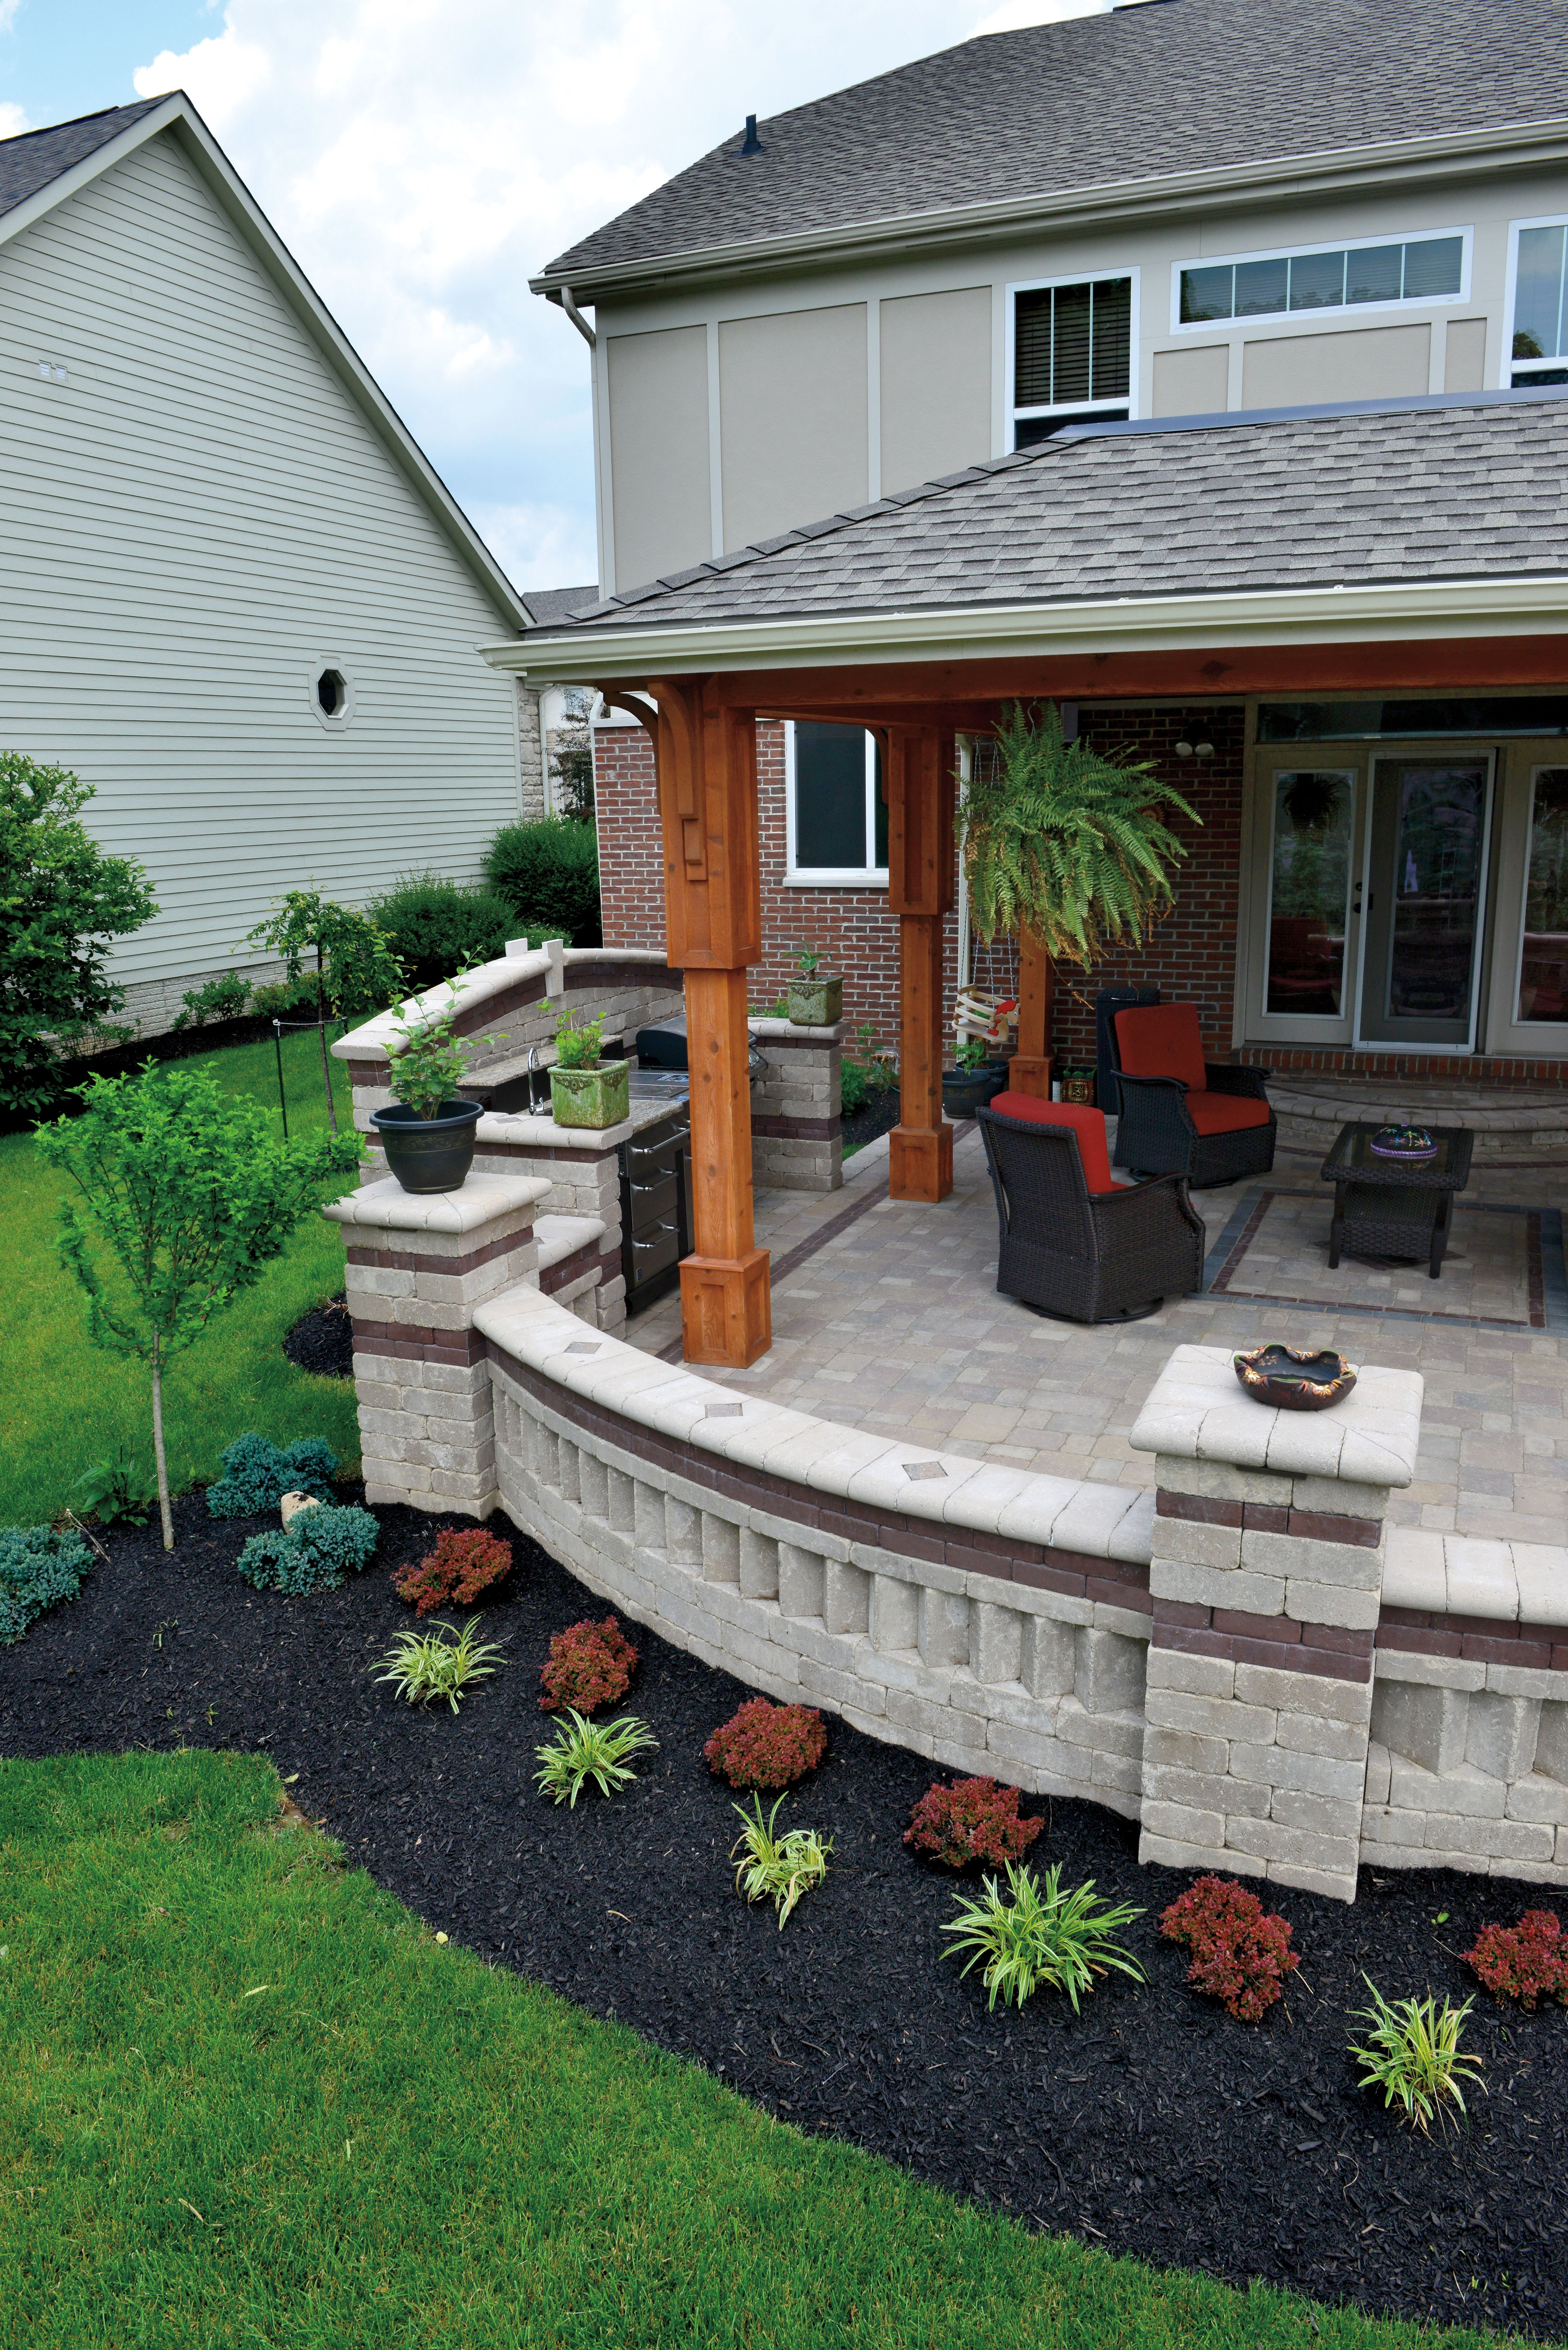 brussels block paver patio and brussels dimensional wall photos backyard patio patio design patio deck designs